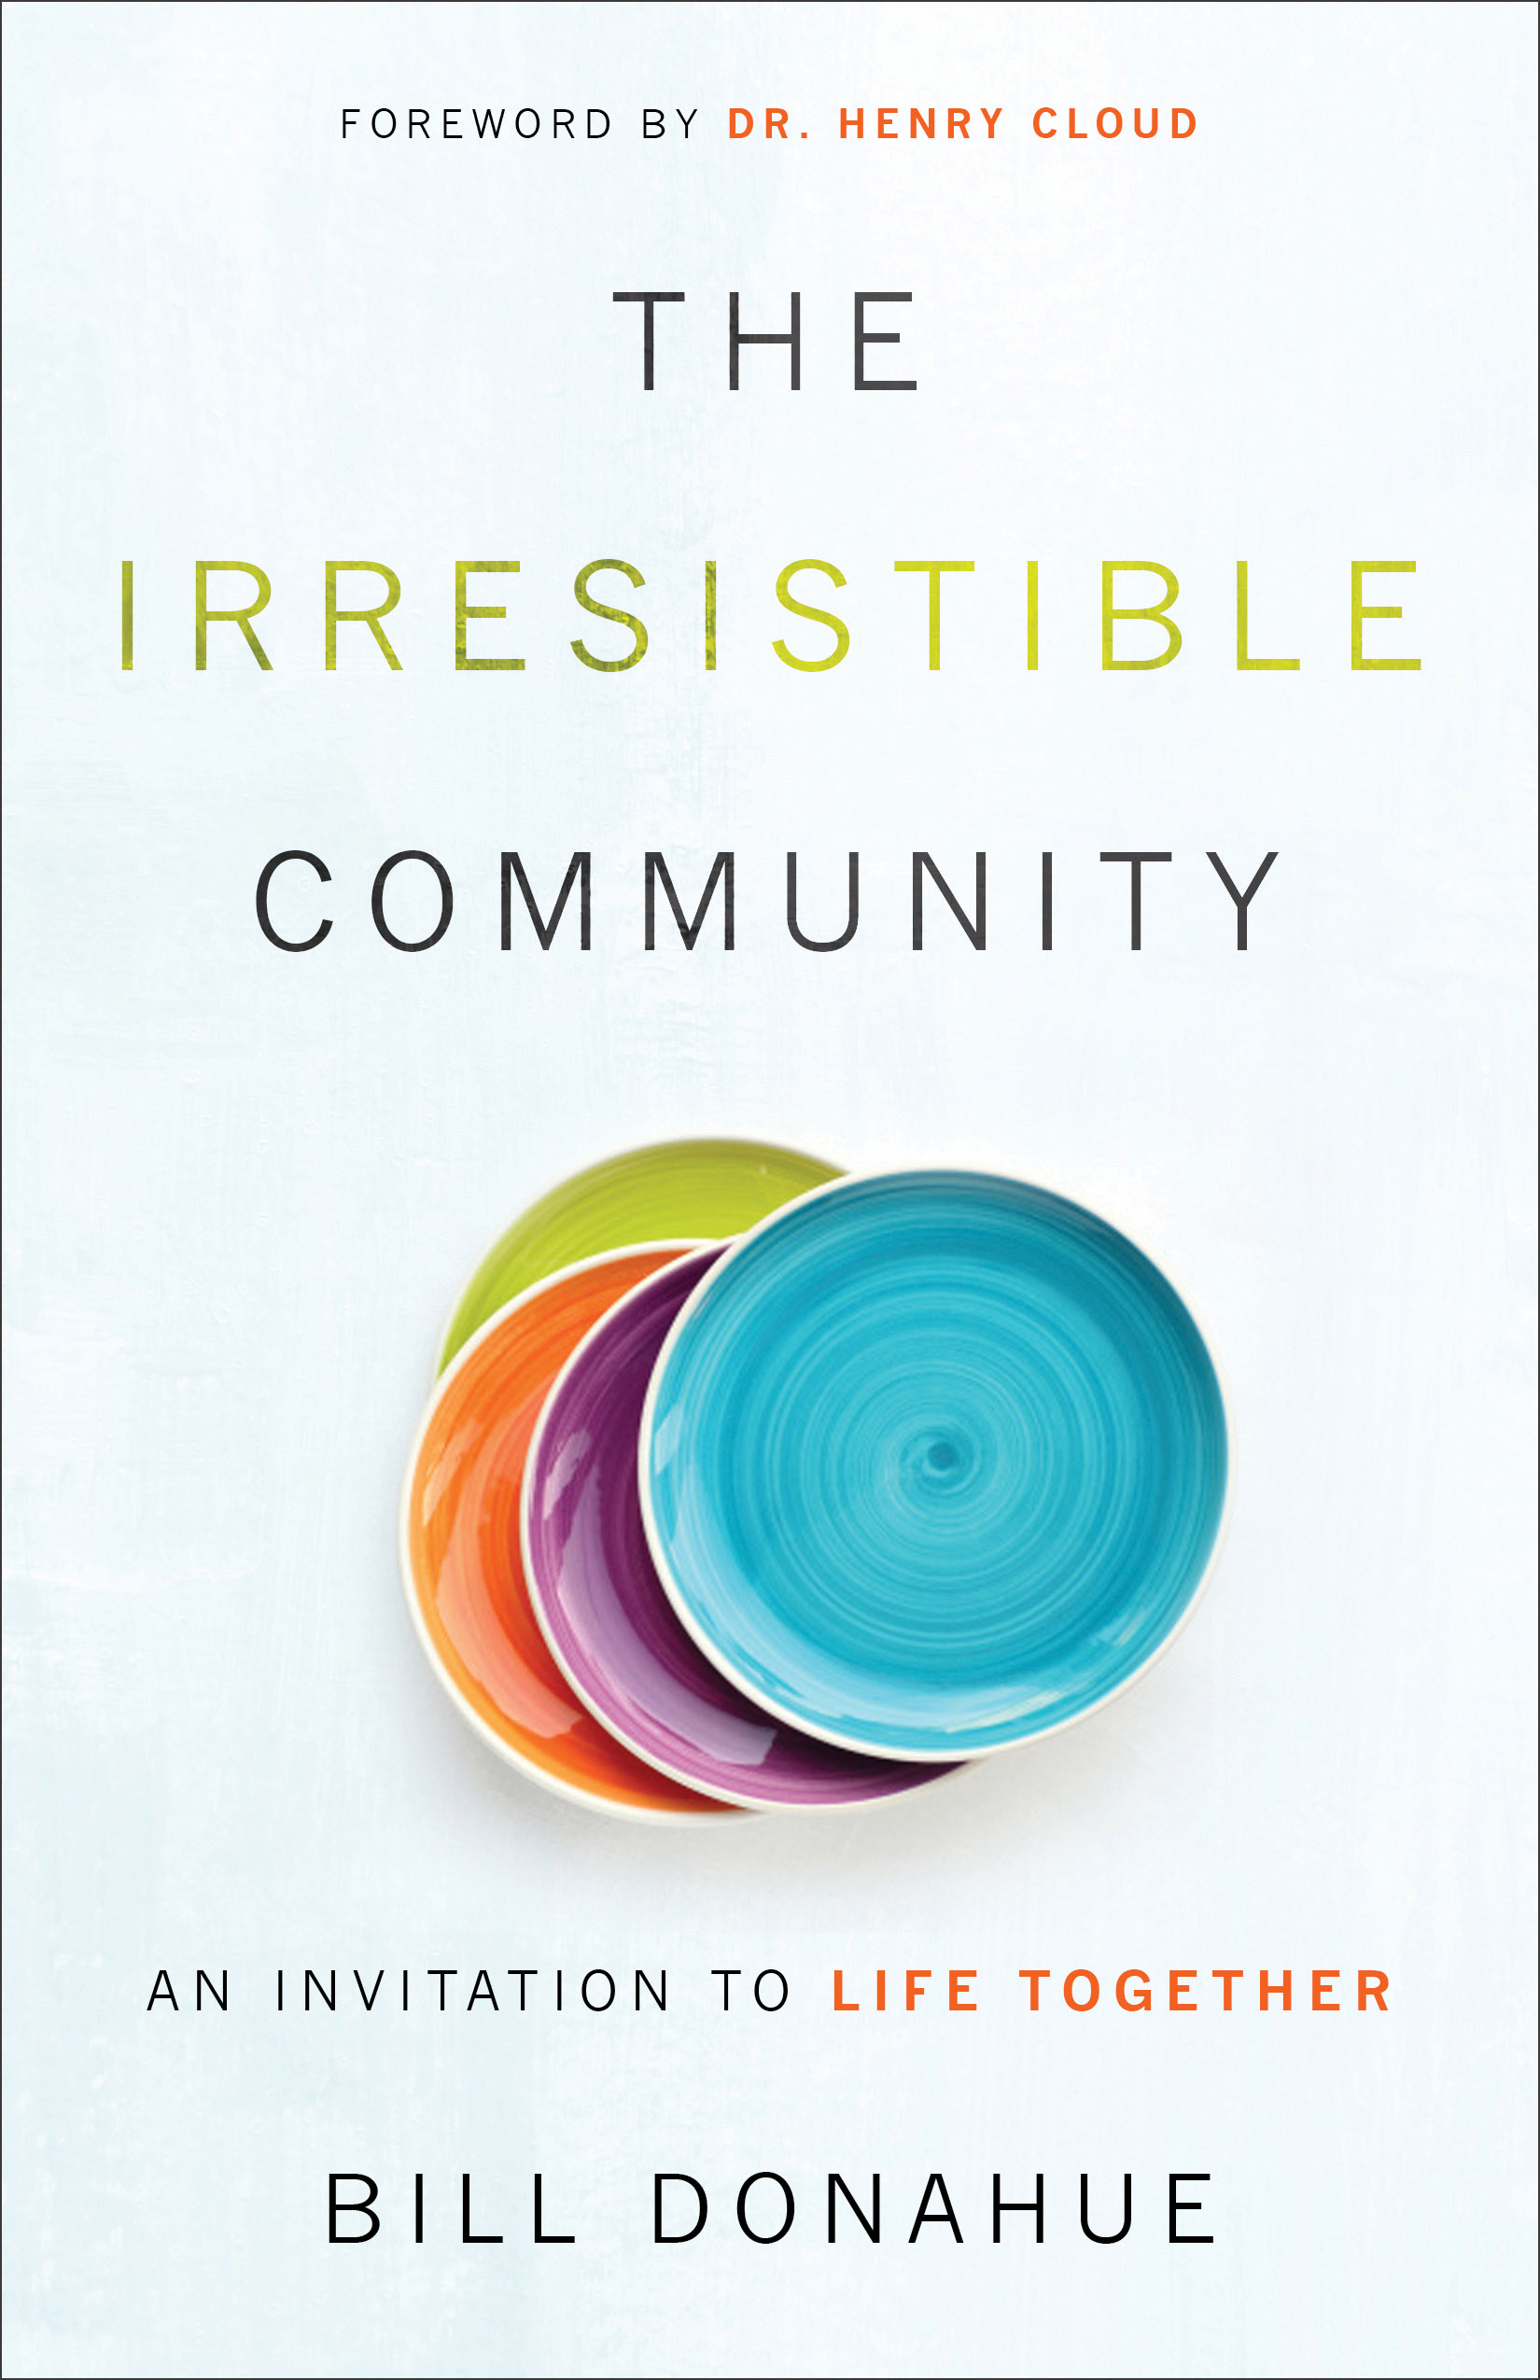 The Irresistible Community: Book Review